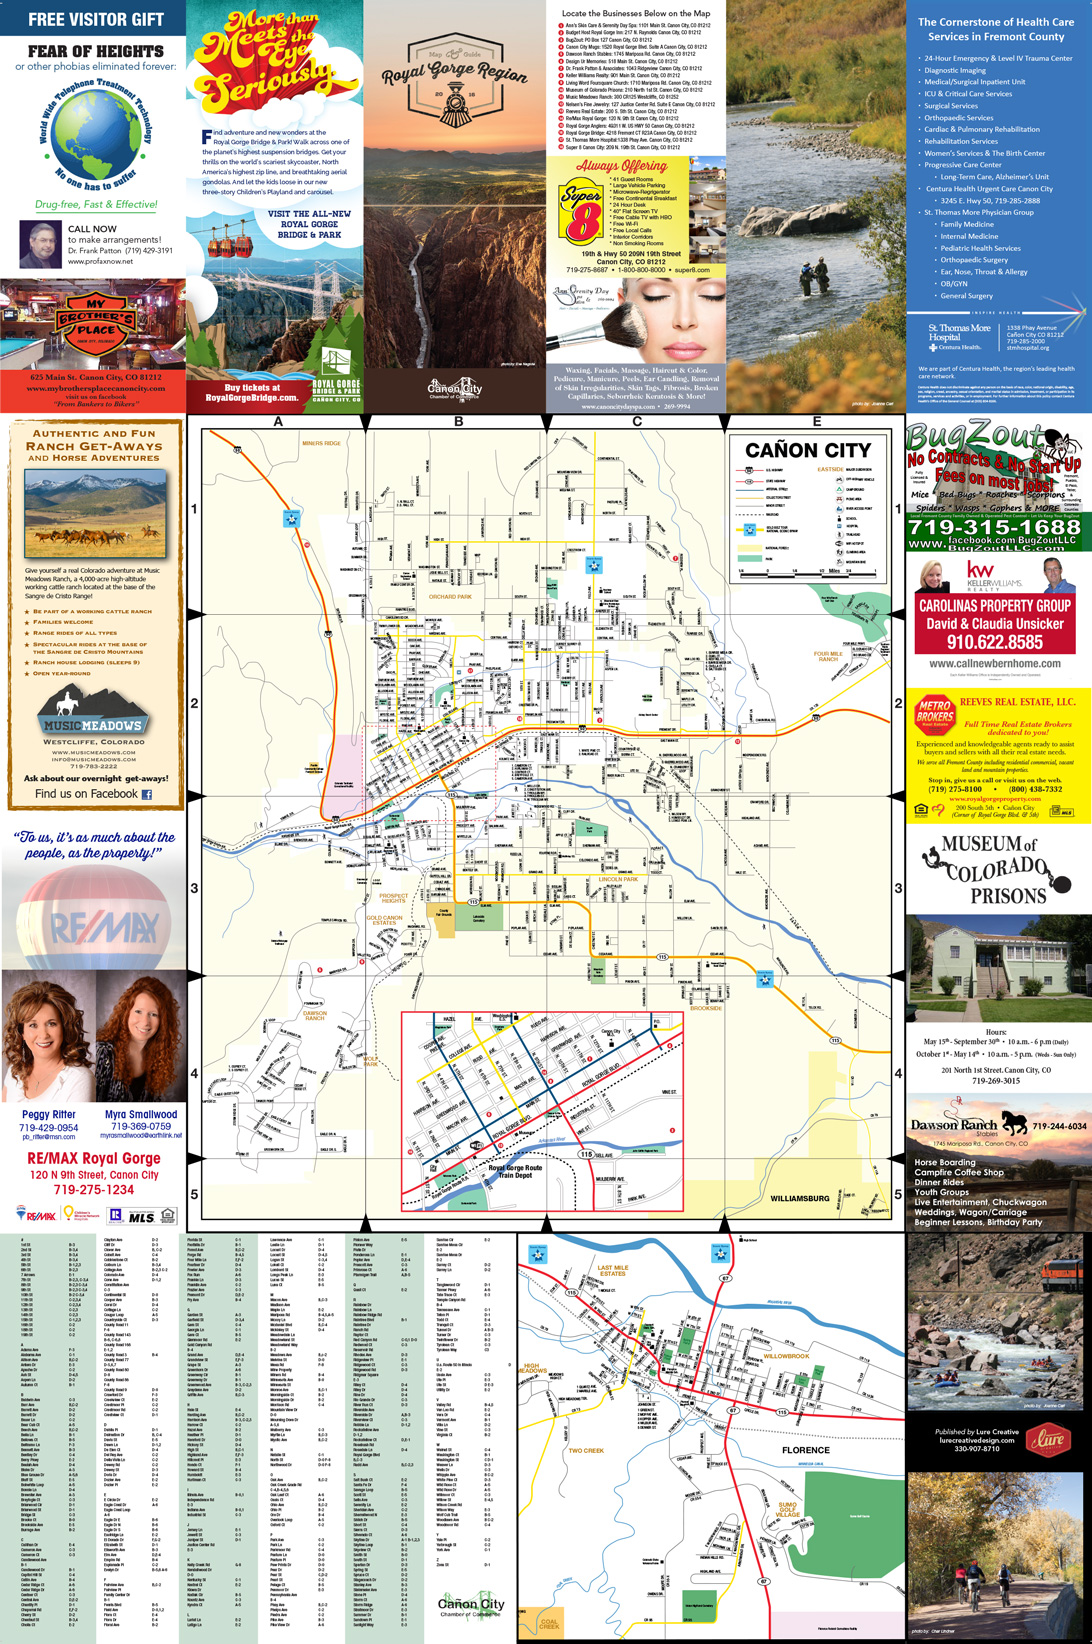 ft collins zip code map, boulder city map, grand junction mi map, grand junction to denver map, grand-junction winery map, texas canyon arizona map, salida co map, canon city co map, grand junction and rapid city map, cheyenne city map, on canyon city colorado map